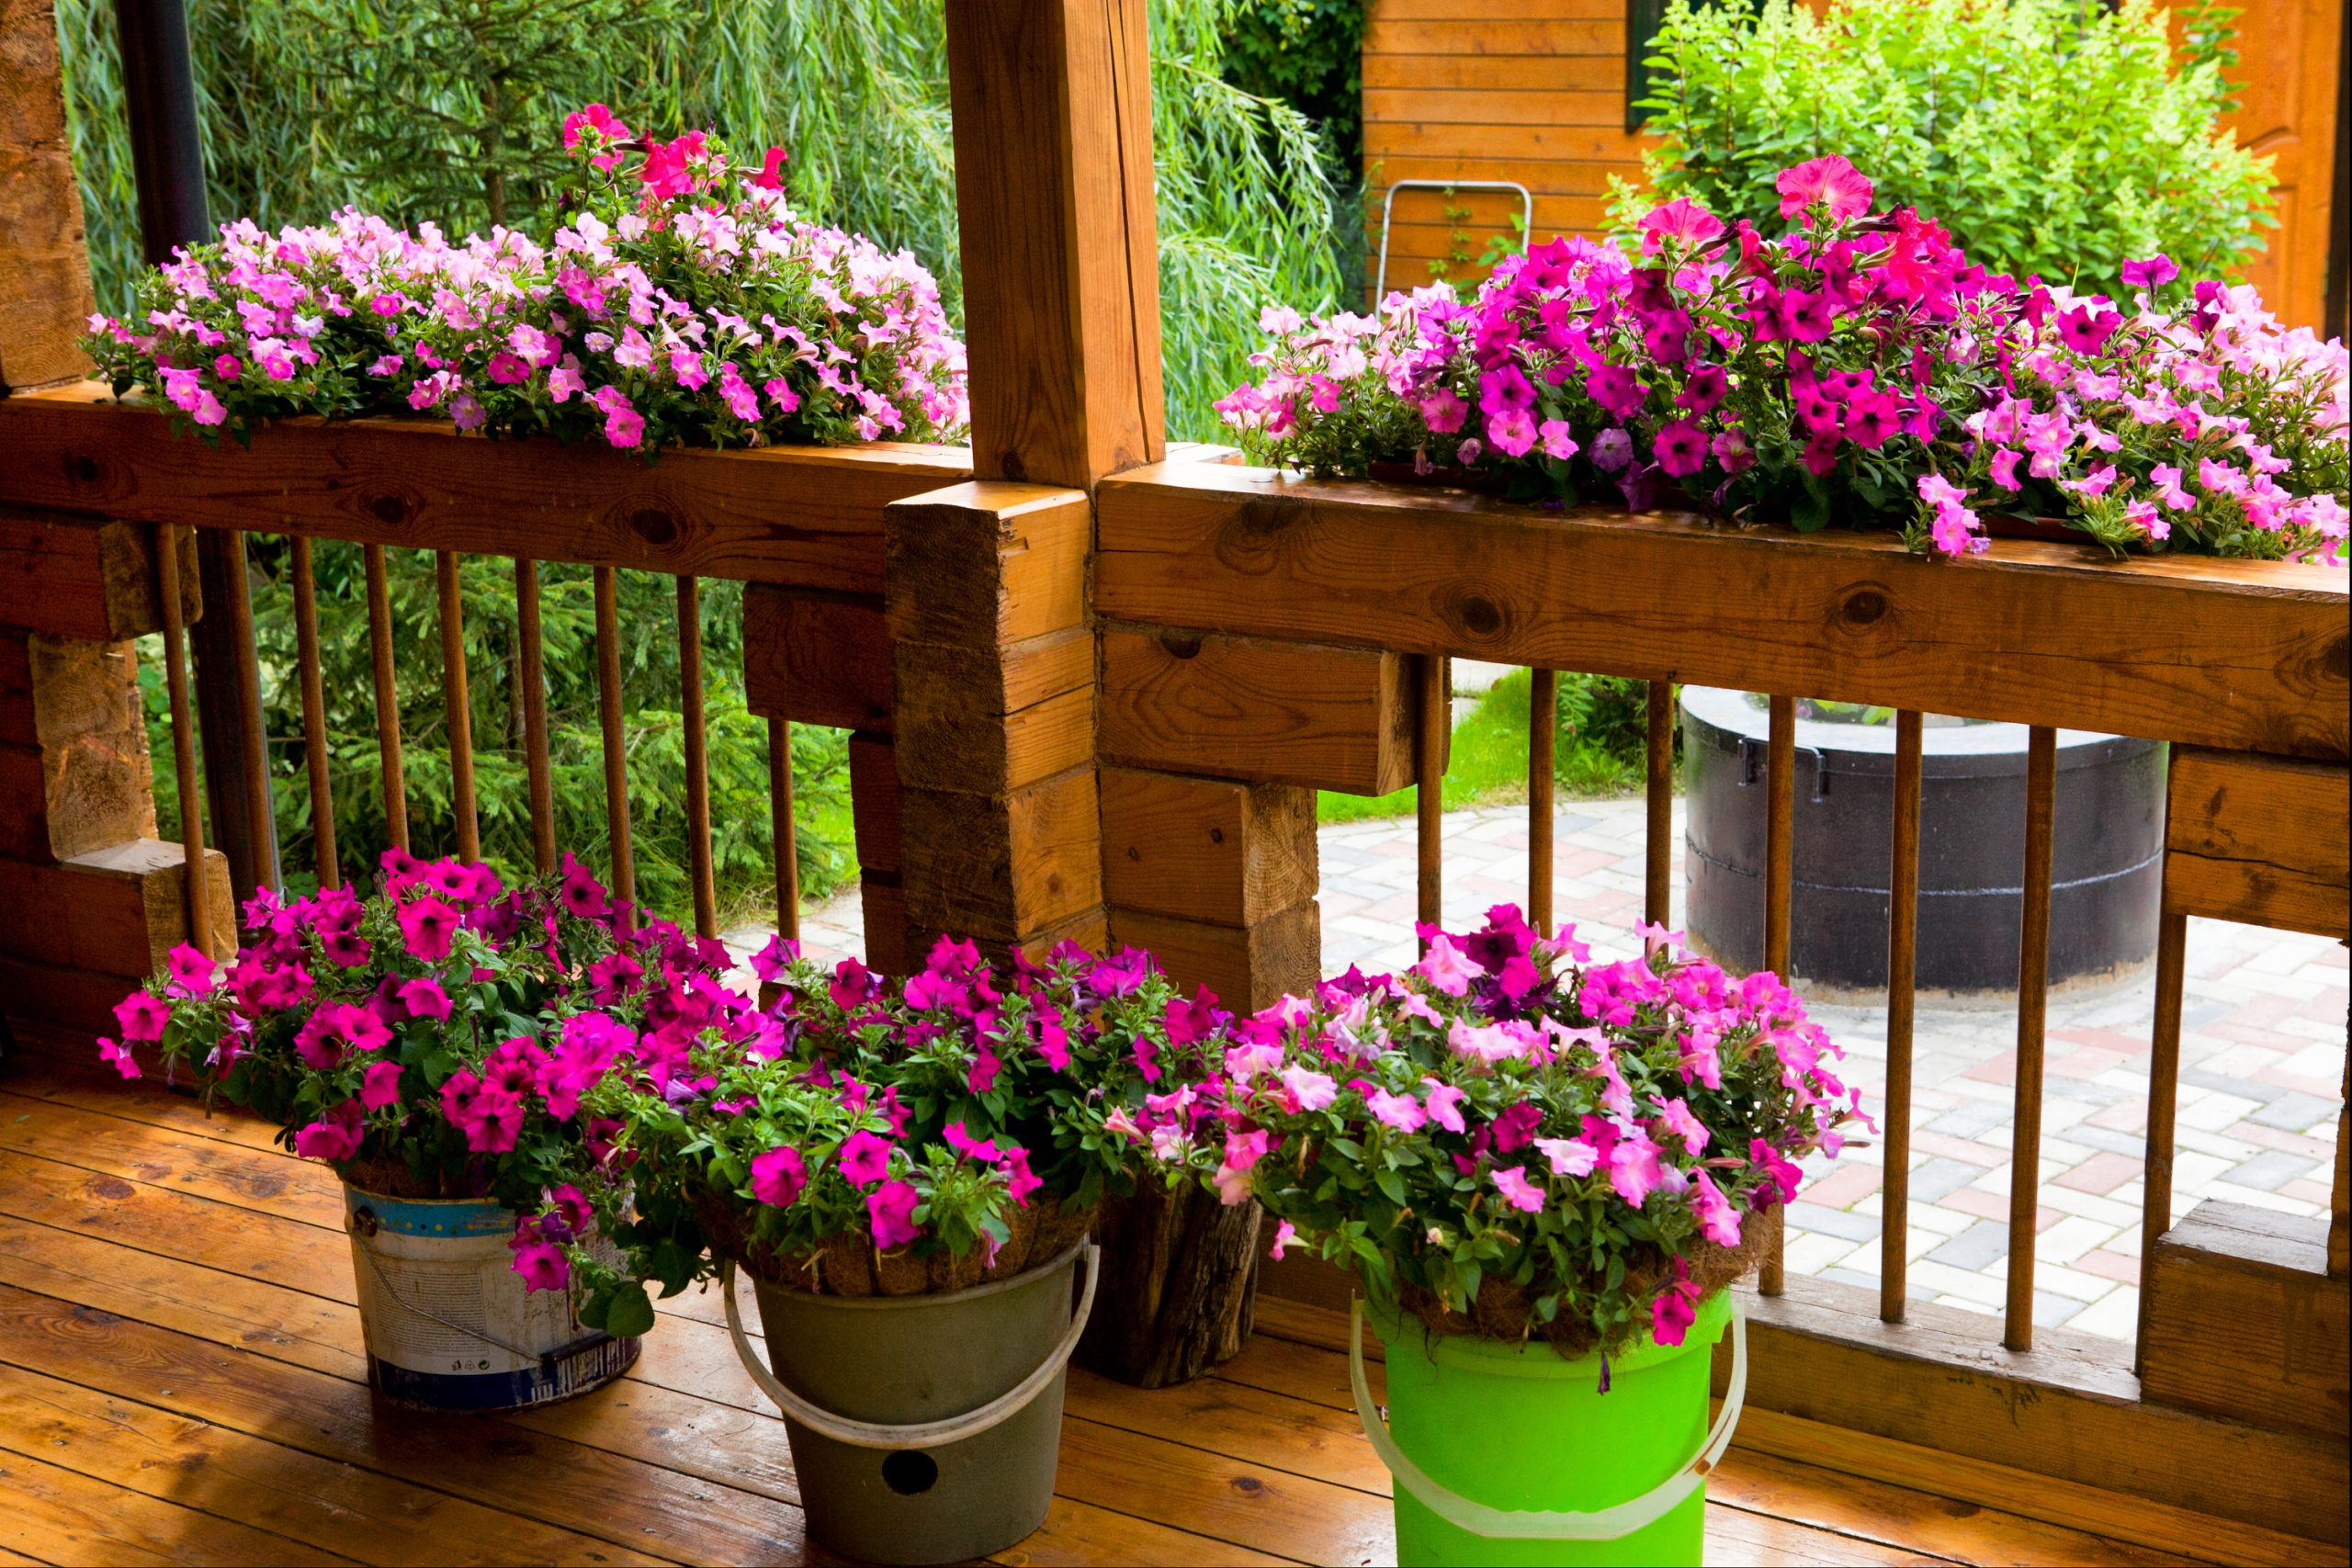 gorgeous pink flowers make great front porch decor ideas